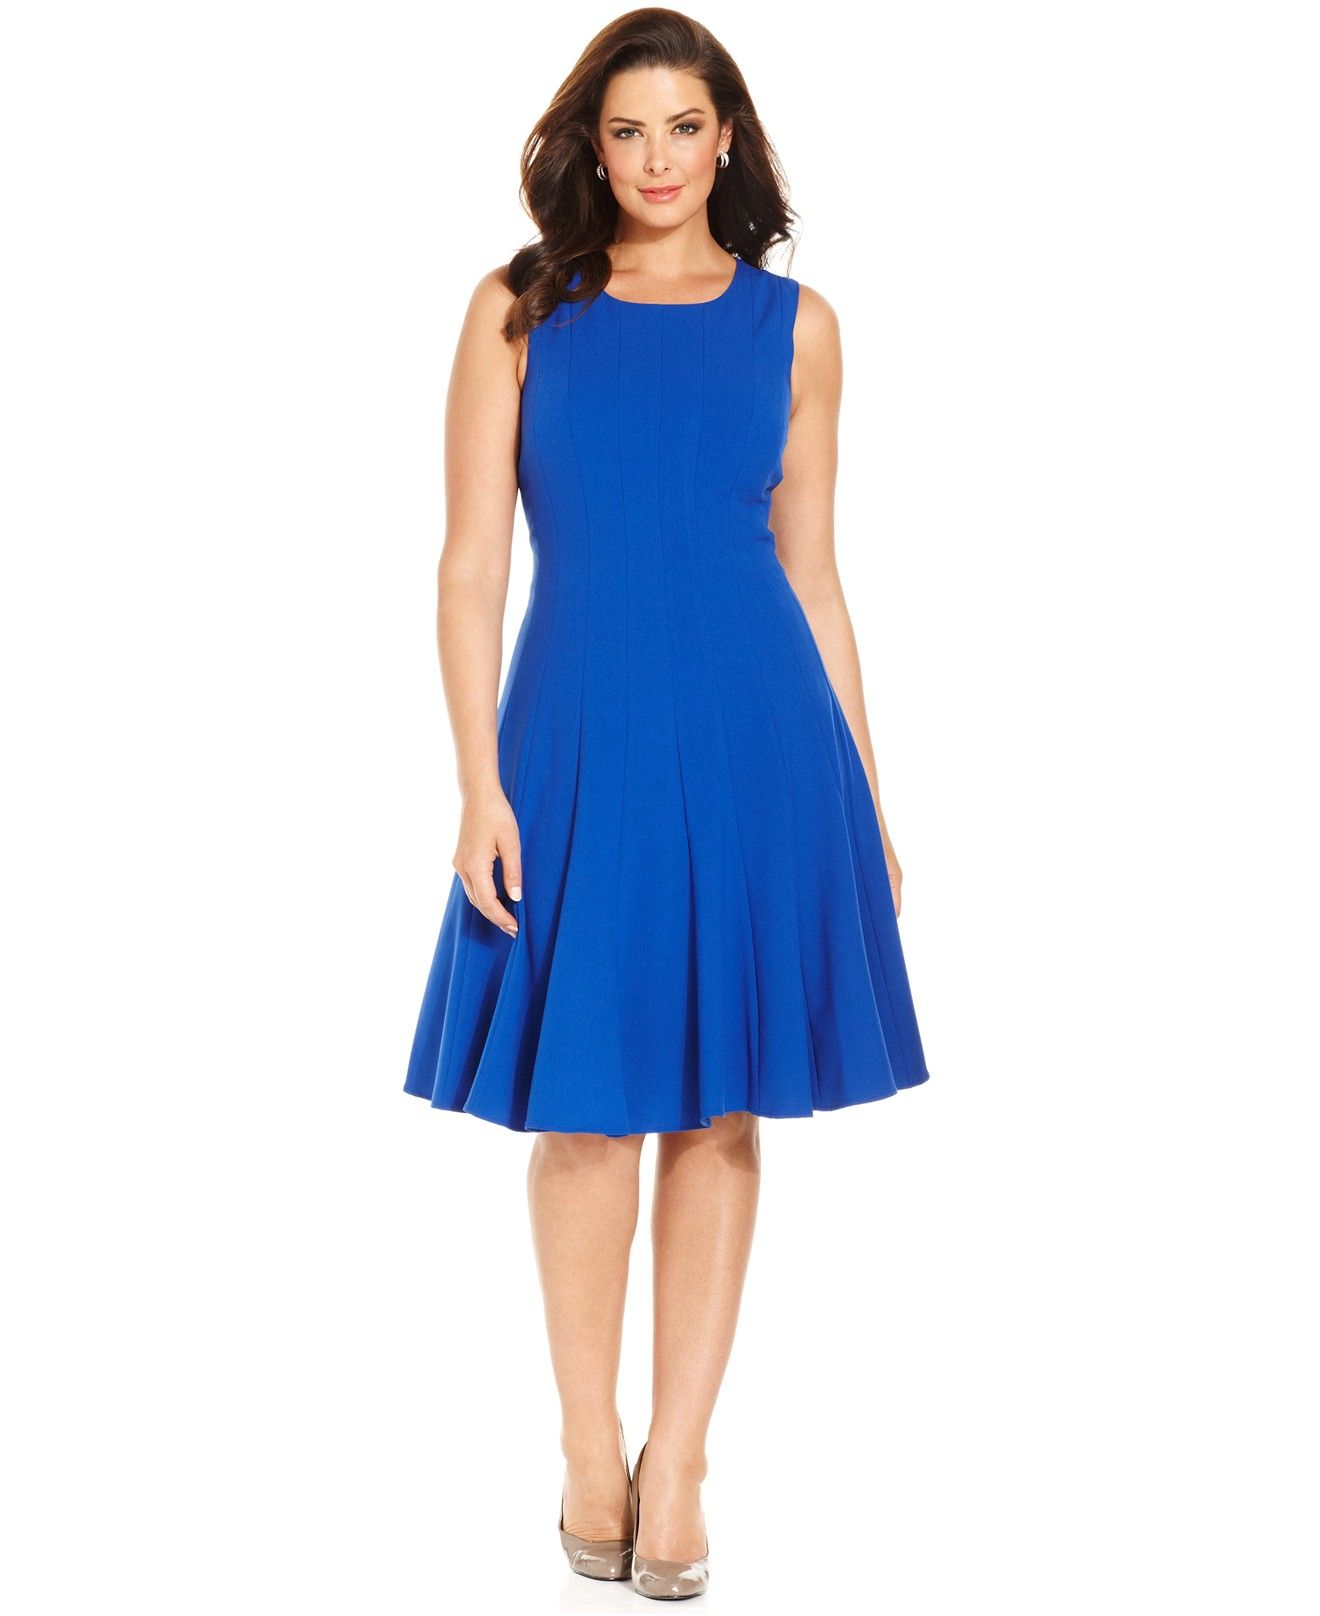 0825c7b1c23f4 Calvin Klein Plus Size Pleated A-Line Dress - Dresses - Plus Sizes - Macy s